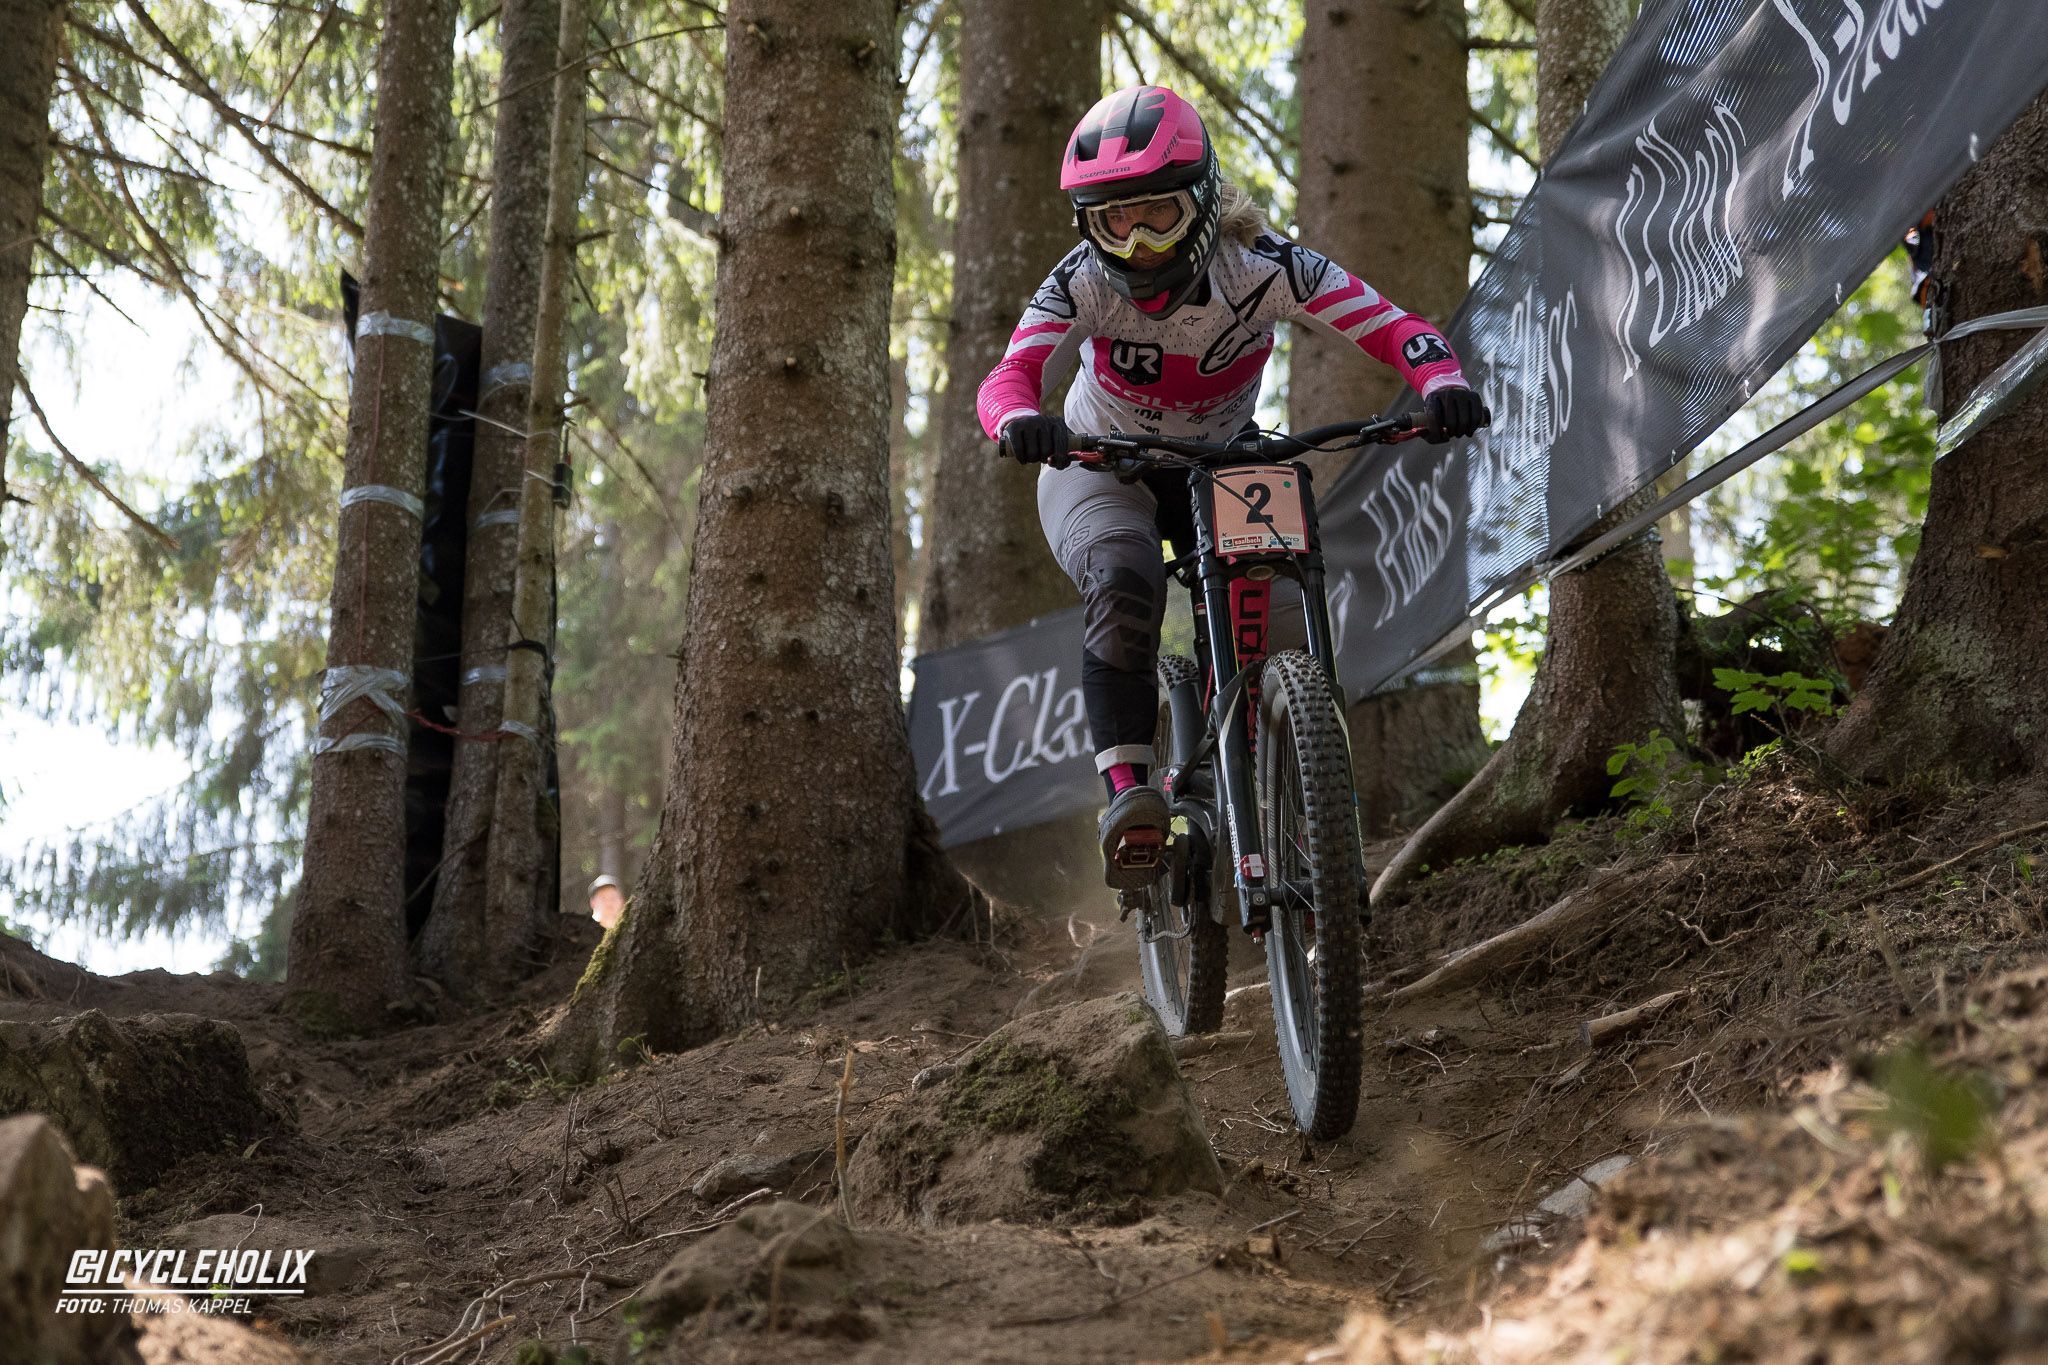 2019 Downhill Worldcup Leogang Finale Action 20 Cycleholix